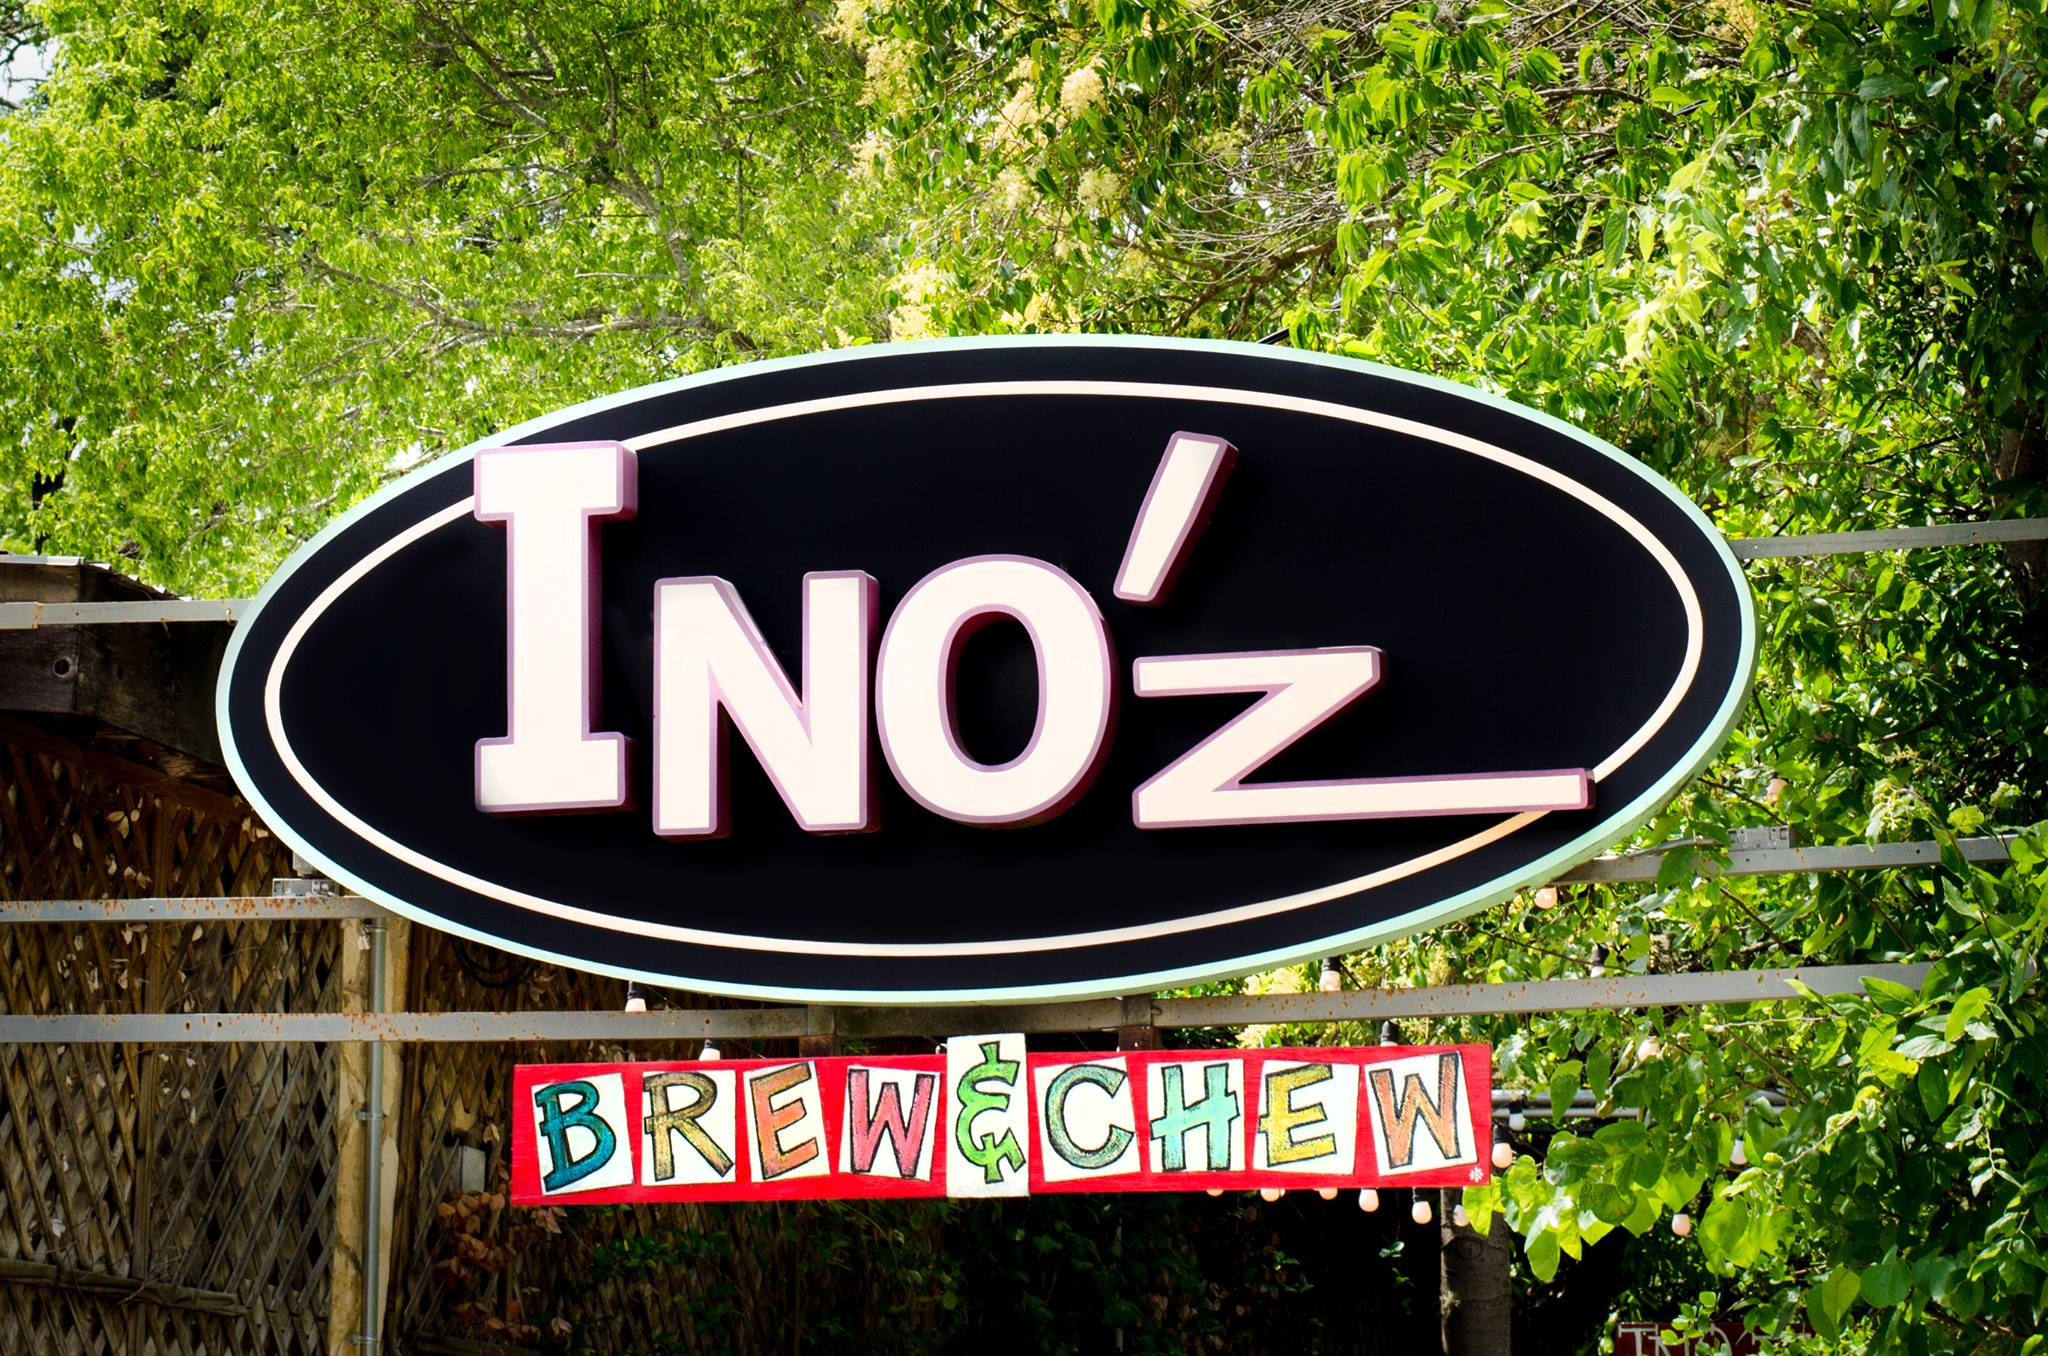 Visit Ino'z by renting a charter bus.